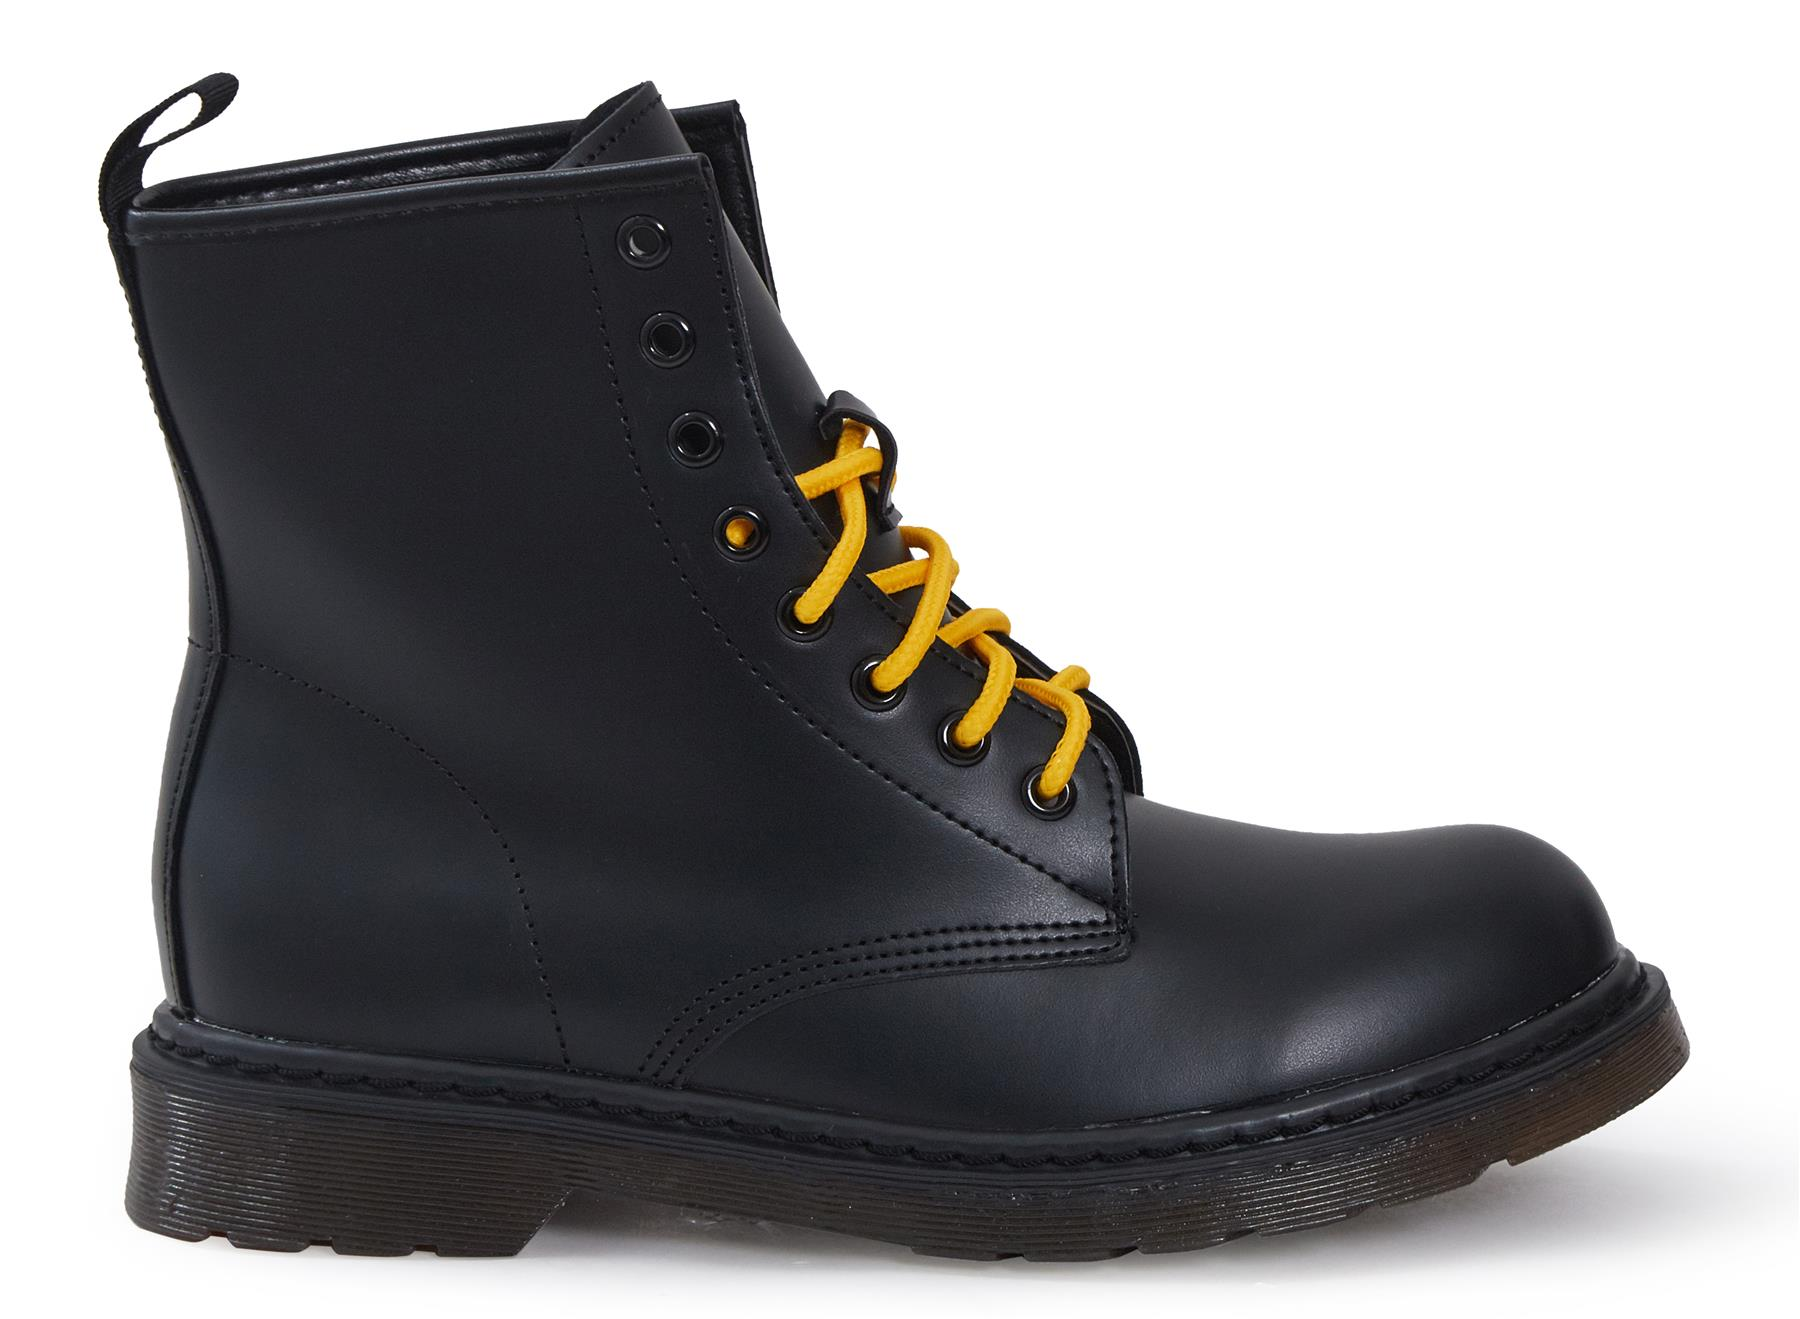 Shelikes-Womens-Ankle-Boots-Vintage-Combat-Army-Flat-Lace-Up-Work-Military-Biker thumbnail 4